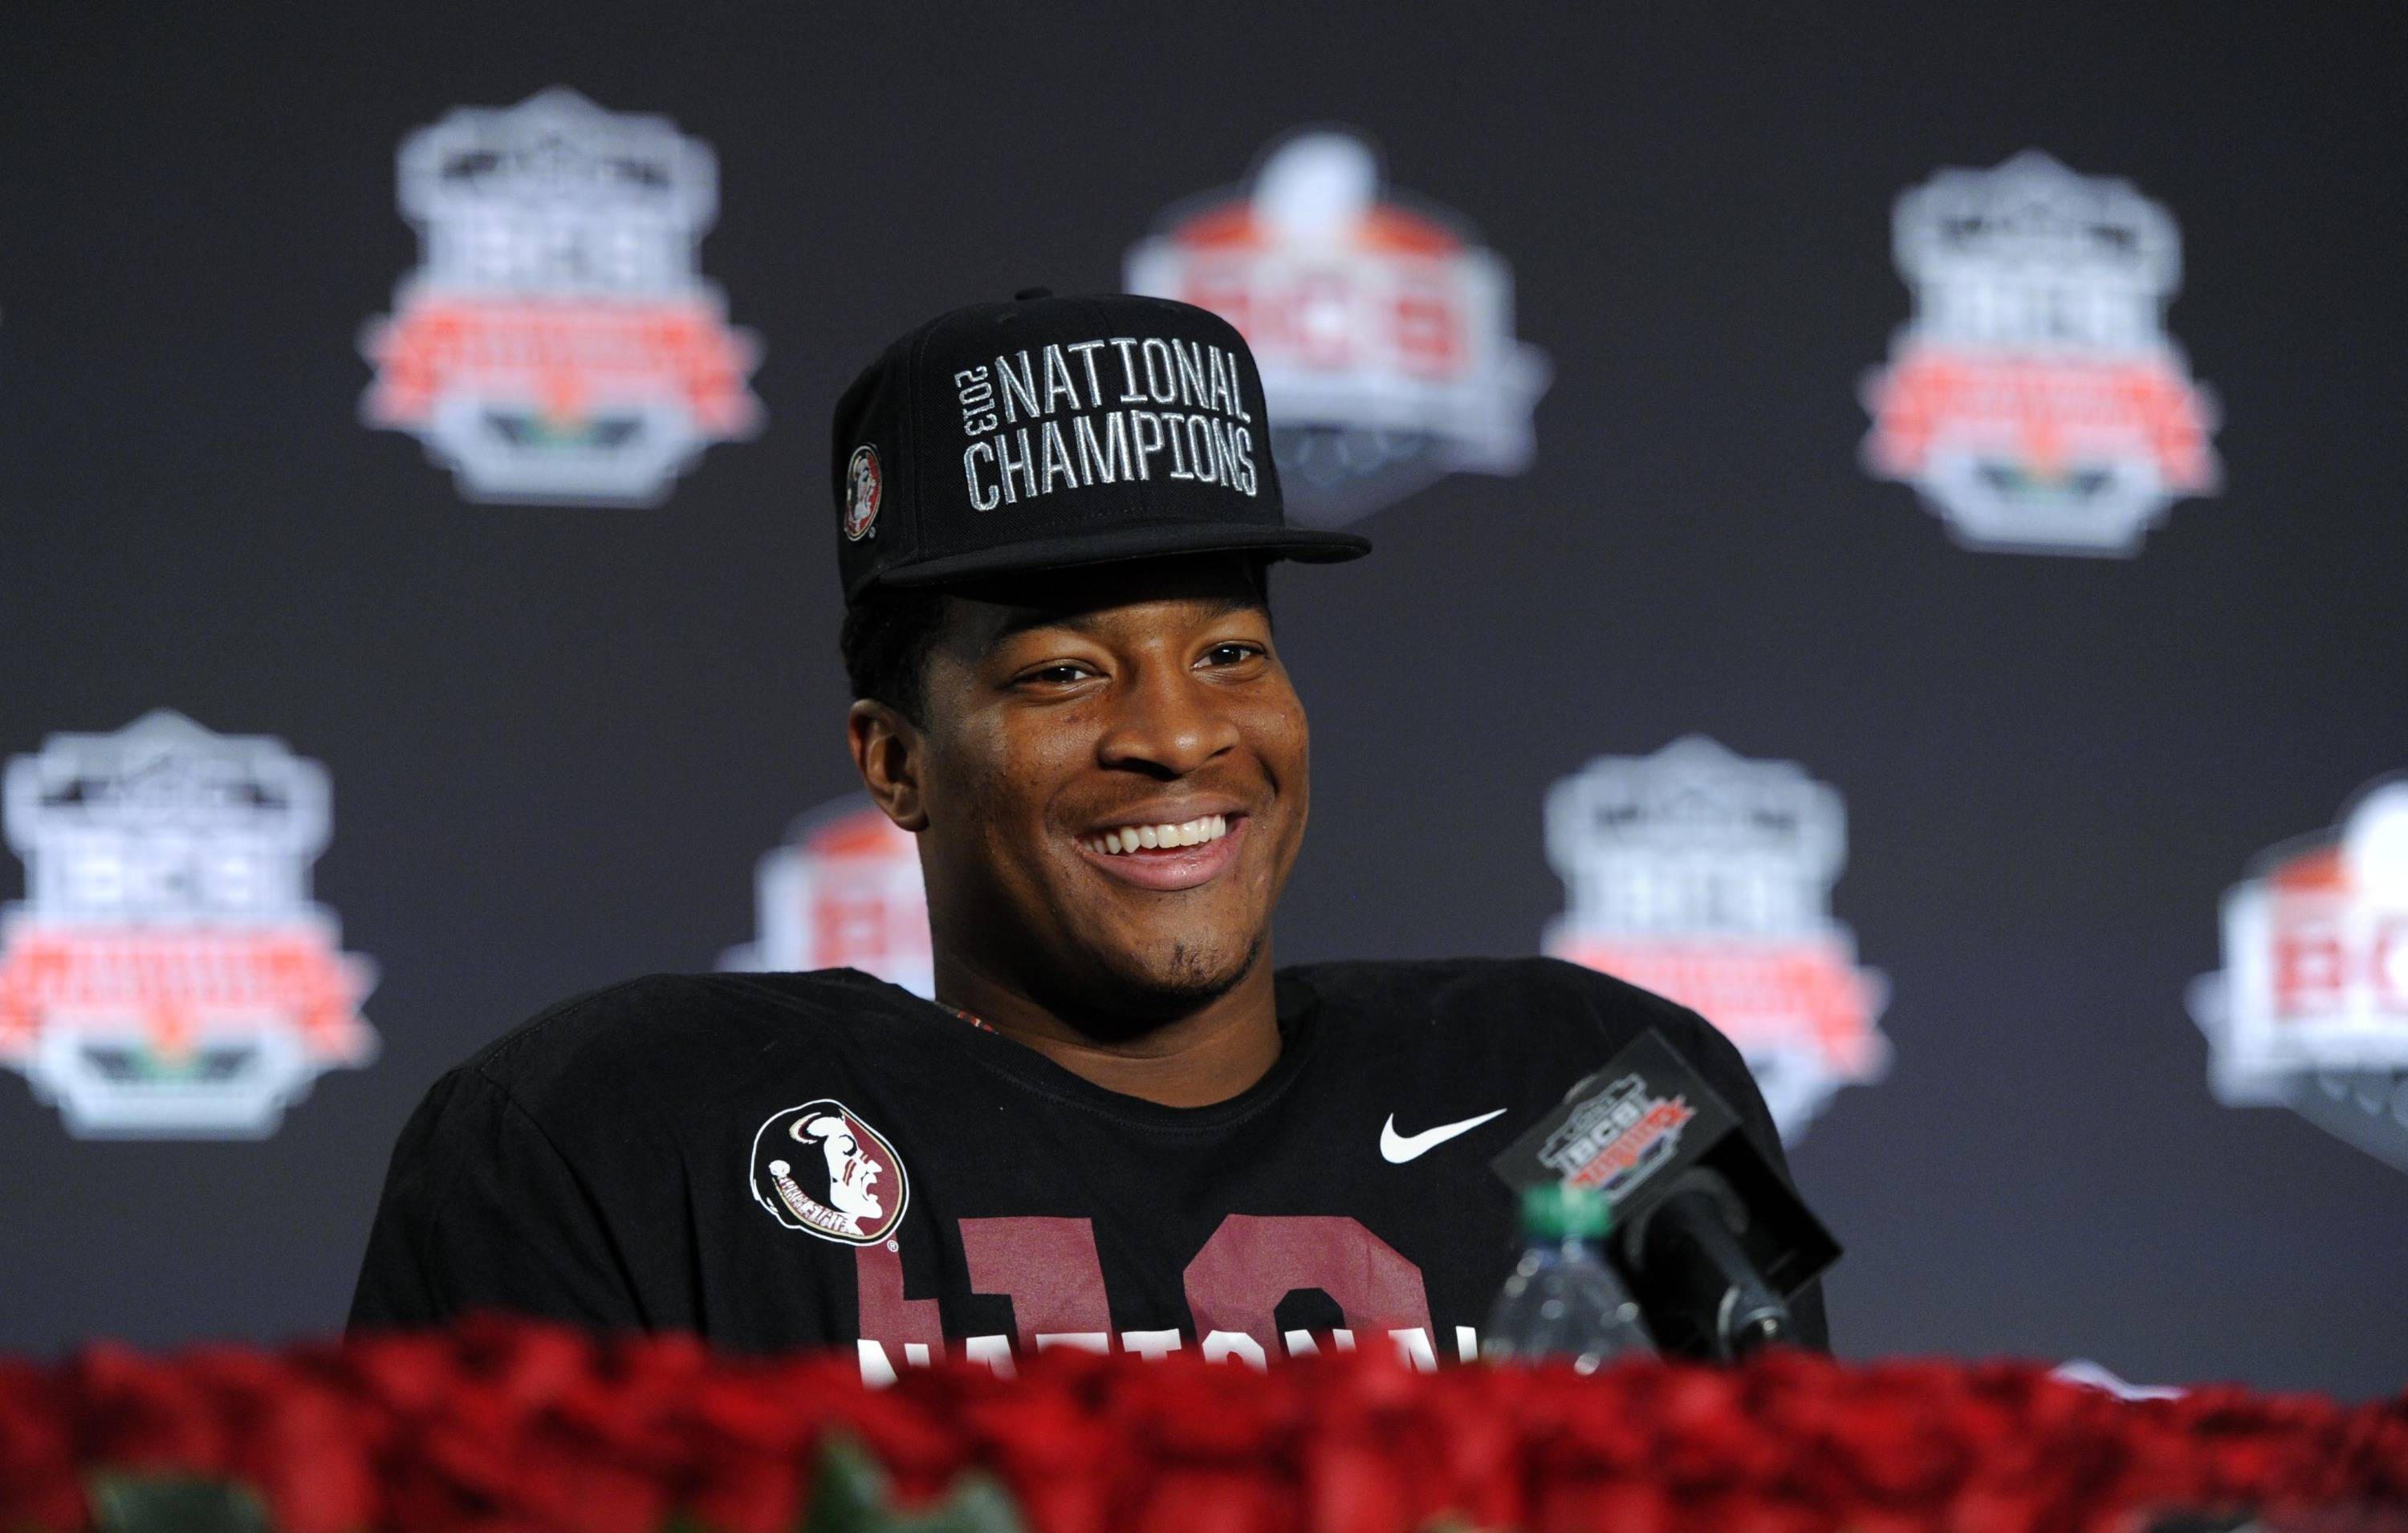 Jan 6, 2014; Pasadena, CA, USA; Florida State Seminoles quarterback Jameis Winston (5) at a press conference after the 2014 BCS National Championship game against the Auburn Tigers at the Rose Bowl.  Mandatory Credit: Kirby Lee-USA TODAY Sports